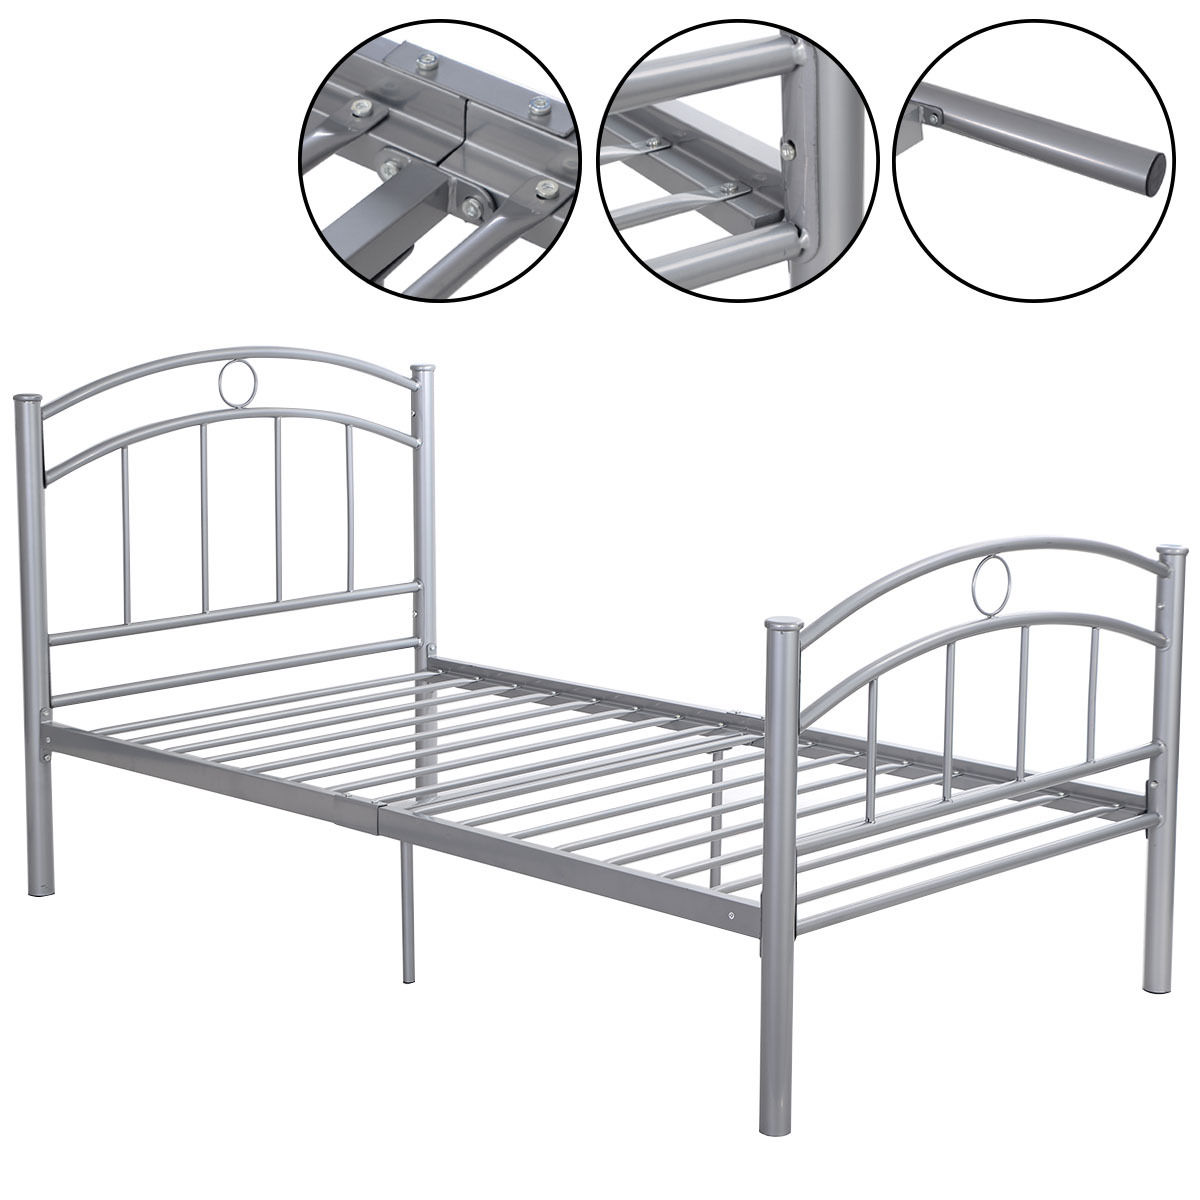 Costway 83''x42''x35'' Black Metal Bed Frame Platform Twin Size  Home Furniture (Sliver)